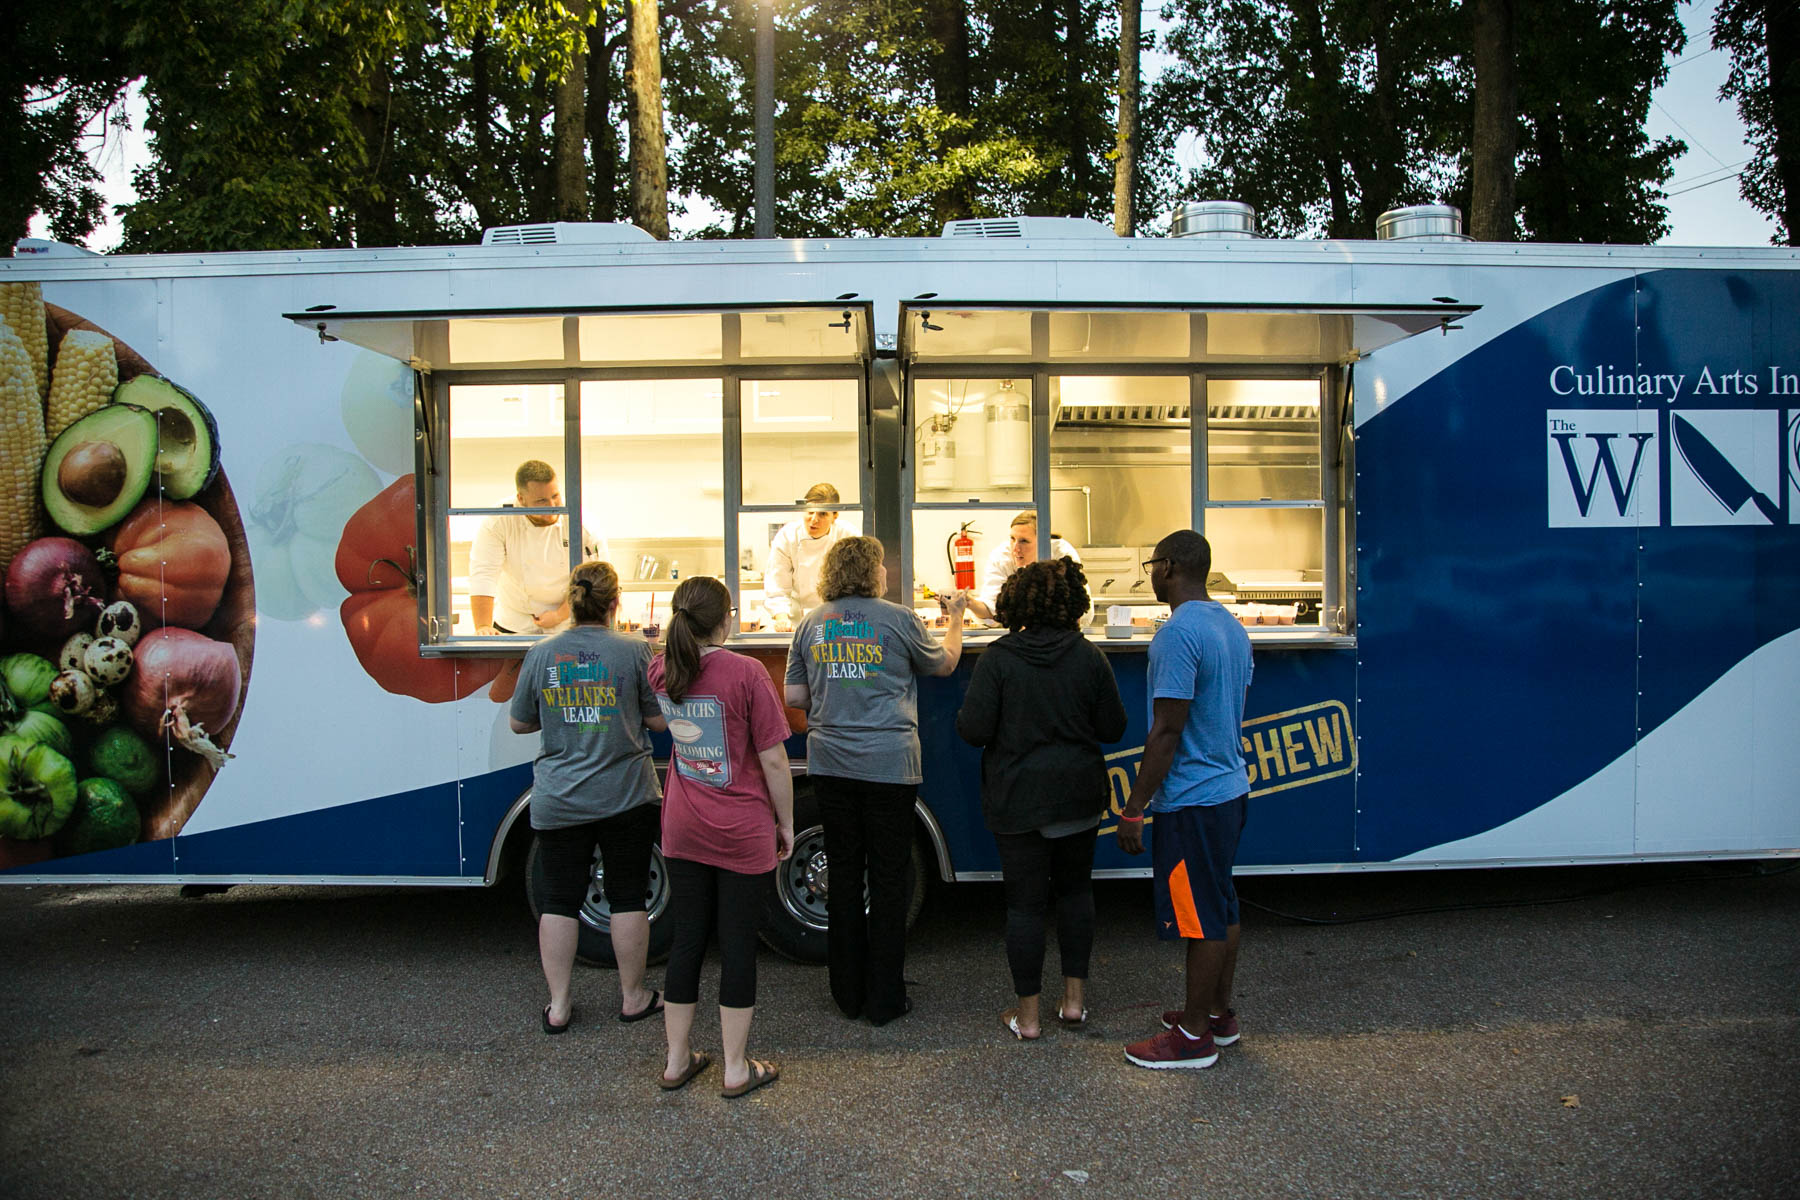 Project CHEW food truck